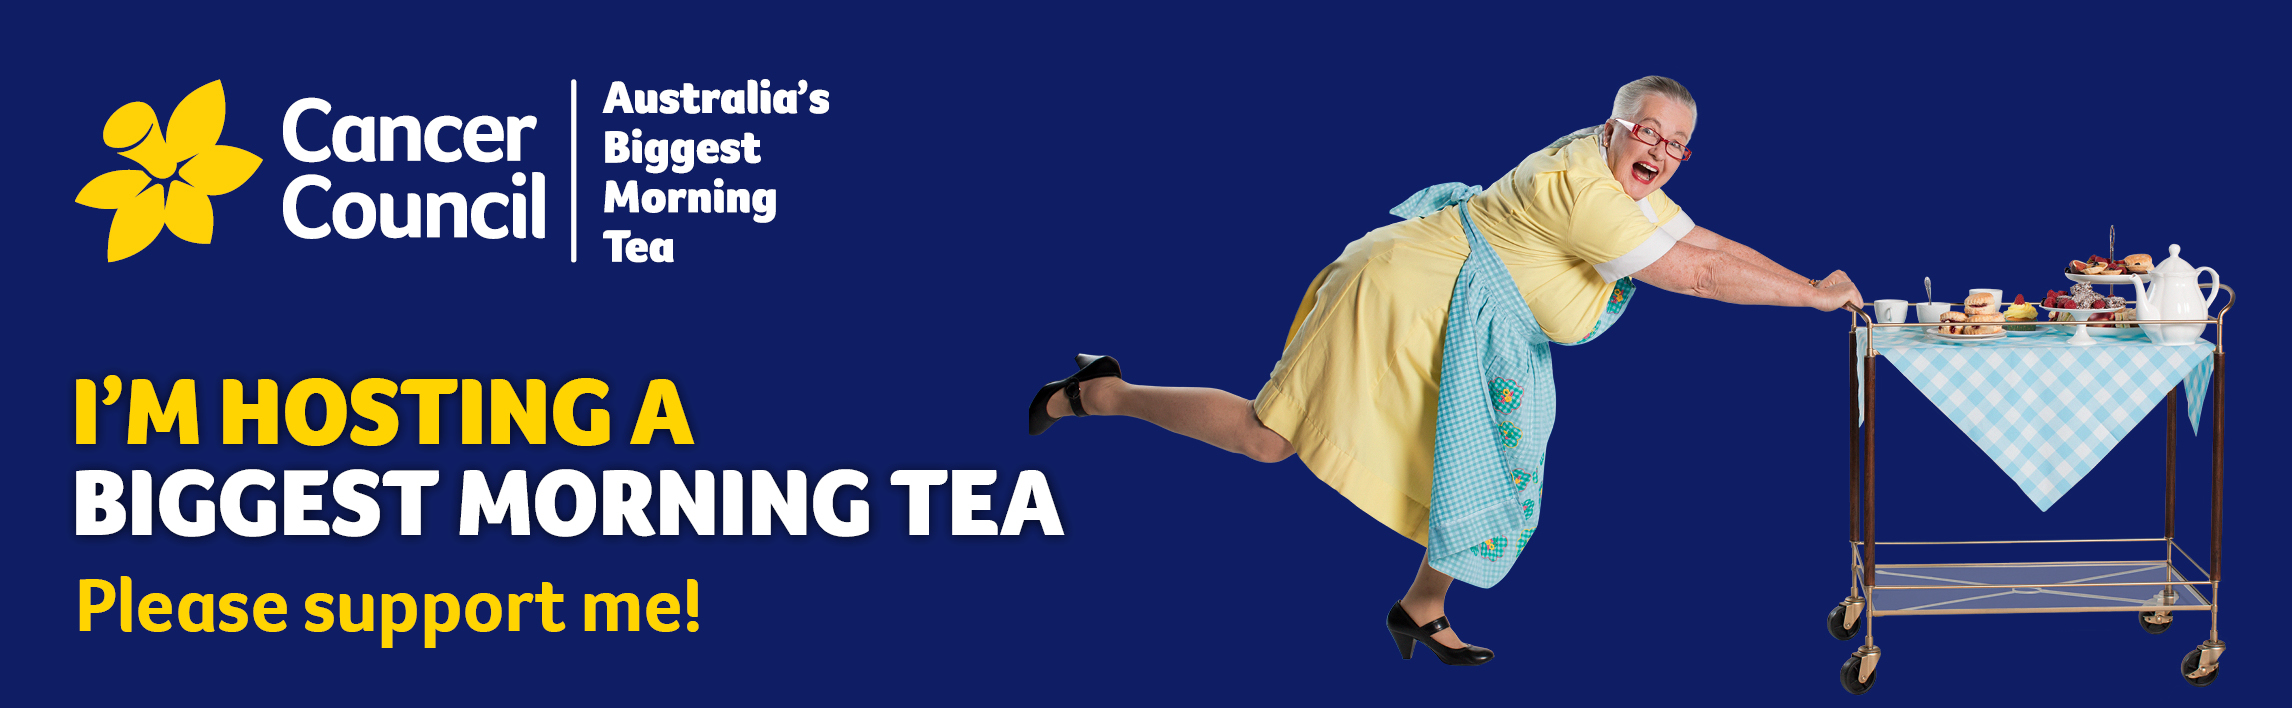 abmt18_email-signature_tea-lady-support_v2.jpg